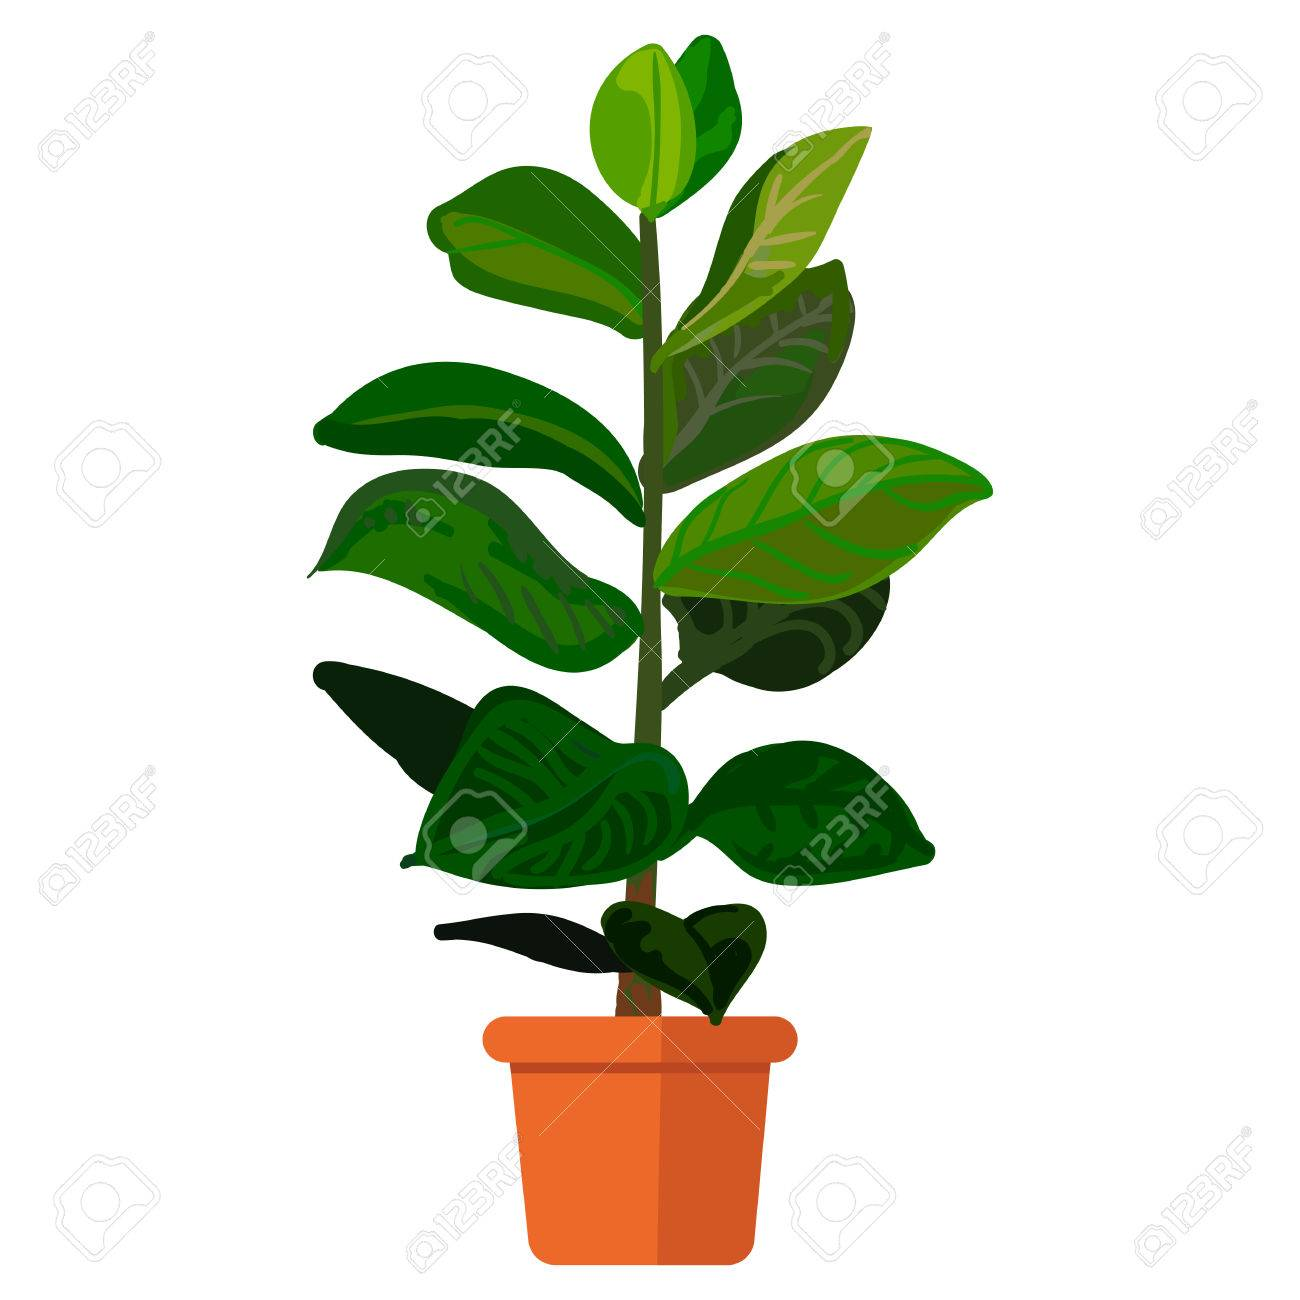 Illustration Plant In Pot Rubber Plant In Pot Royalty Free Cliparts Vectors And Stock Illustration Image 57228977